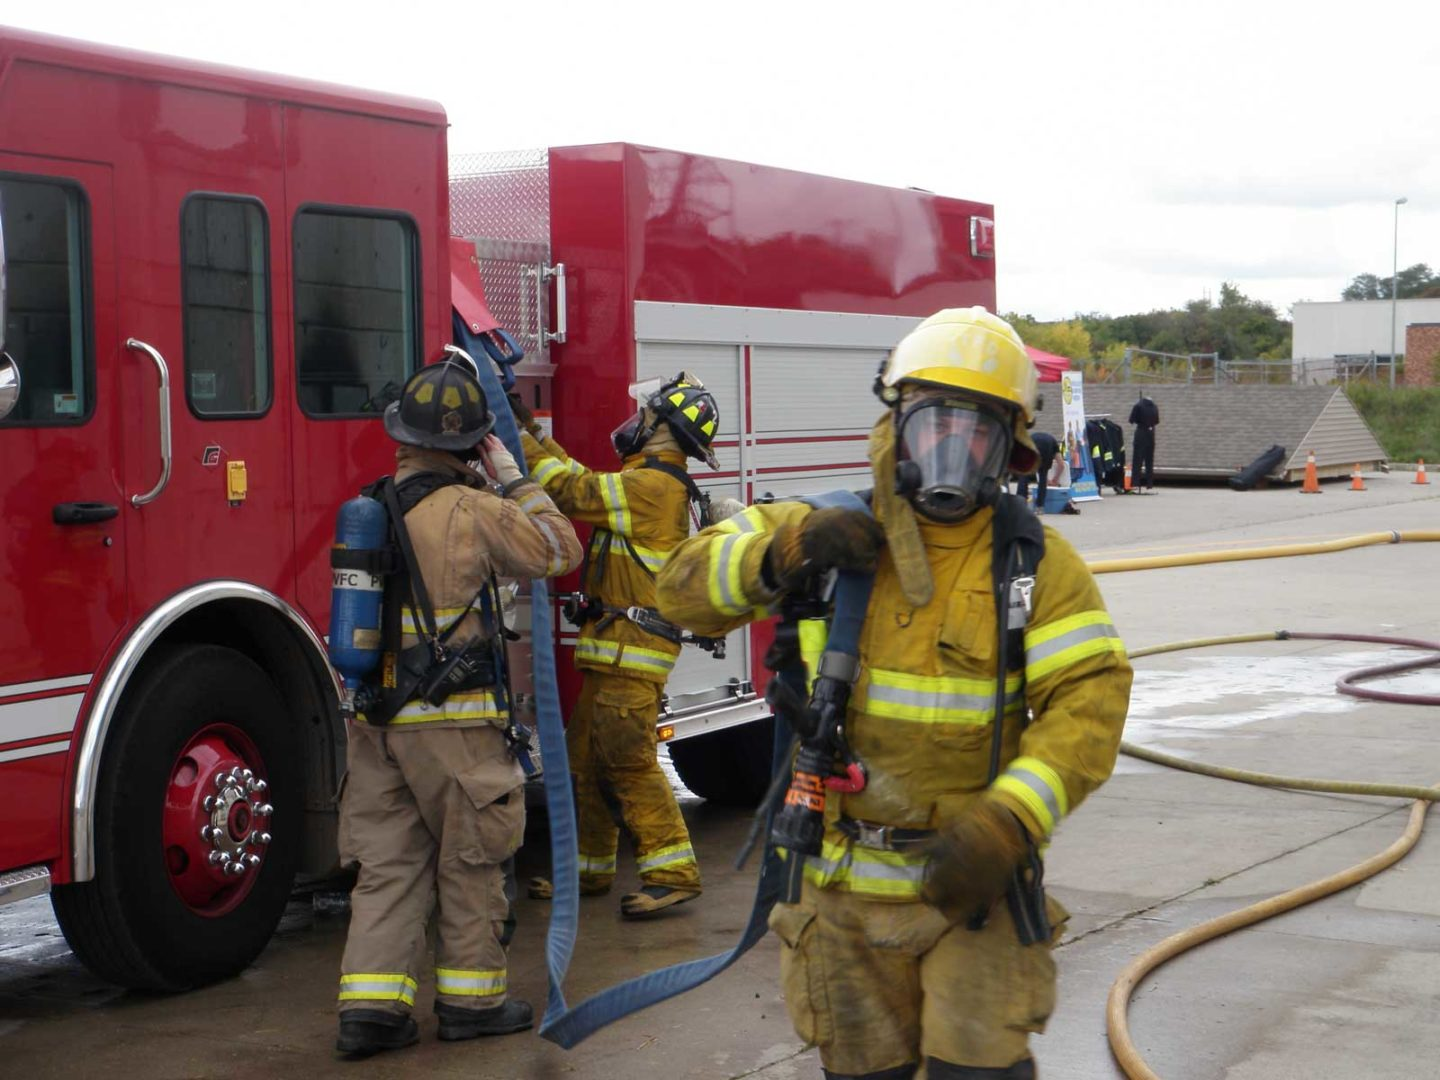 One firefighter will grab the nozzle and start to walk towards the door of the building or to the fire location